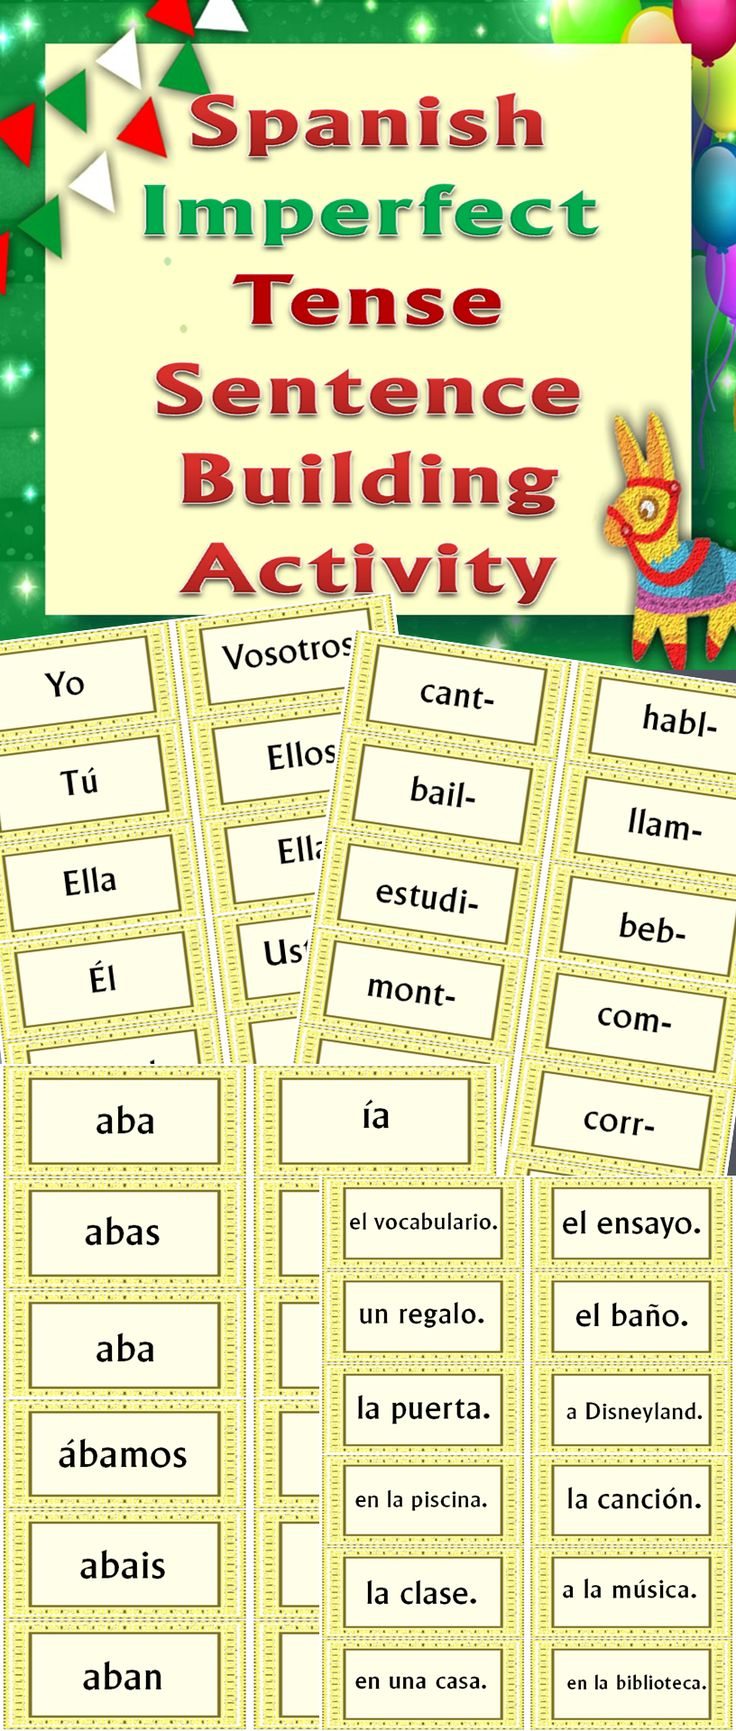 Great hands-on practice of making complete sentences in the #Spanish #imperfect #tense! Students create logical sentences from the subject, verb, verb ending, and sentence ending cards provided, one type of card per sentence. Excellent formative assessment!